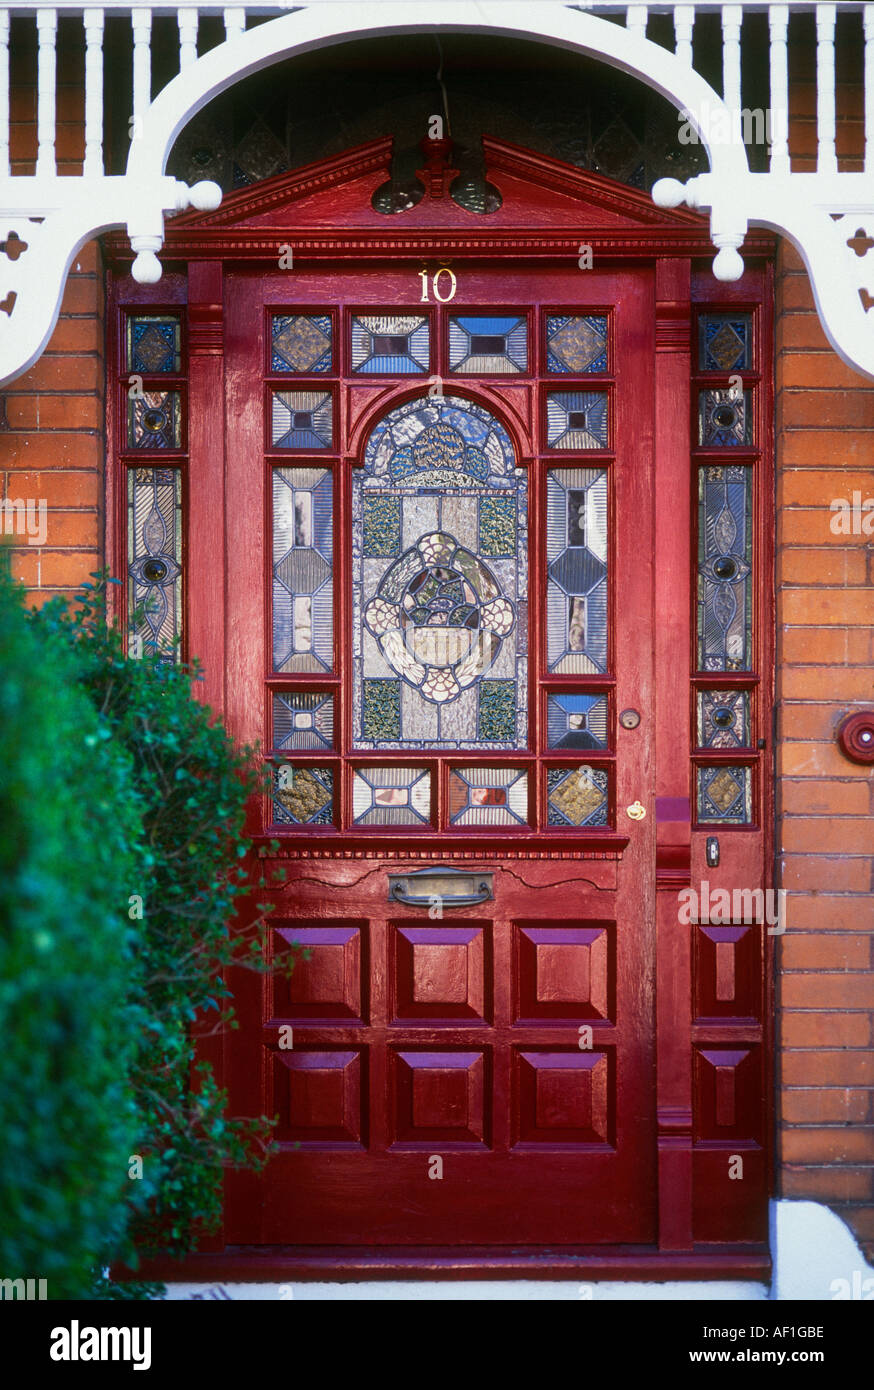 Exterior Stained Glass Red Front Door British Housing